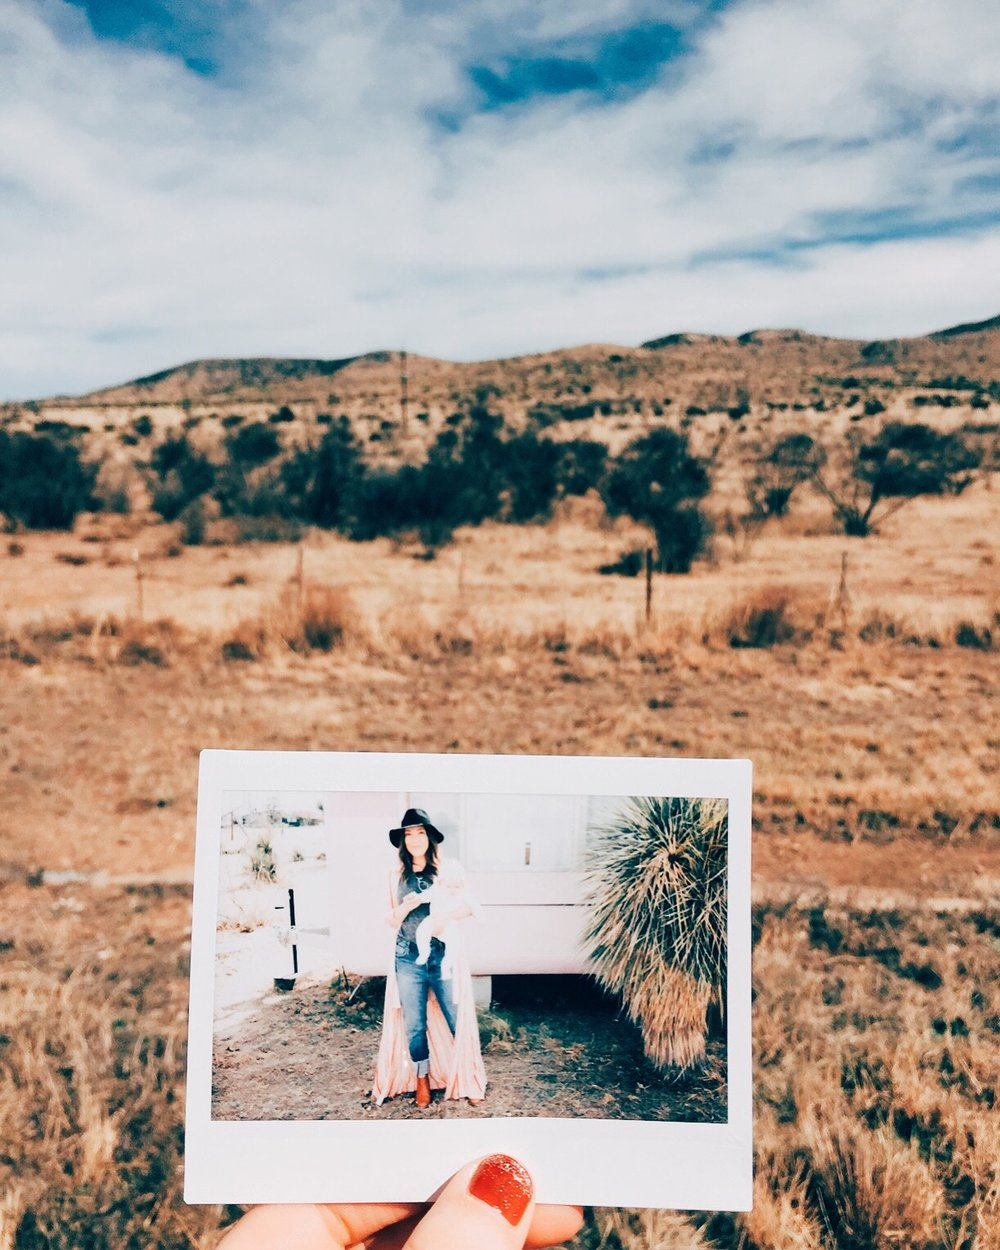 found . marfa - PRO TIP: BRING POLAROIDS ALWAYS